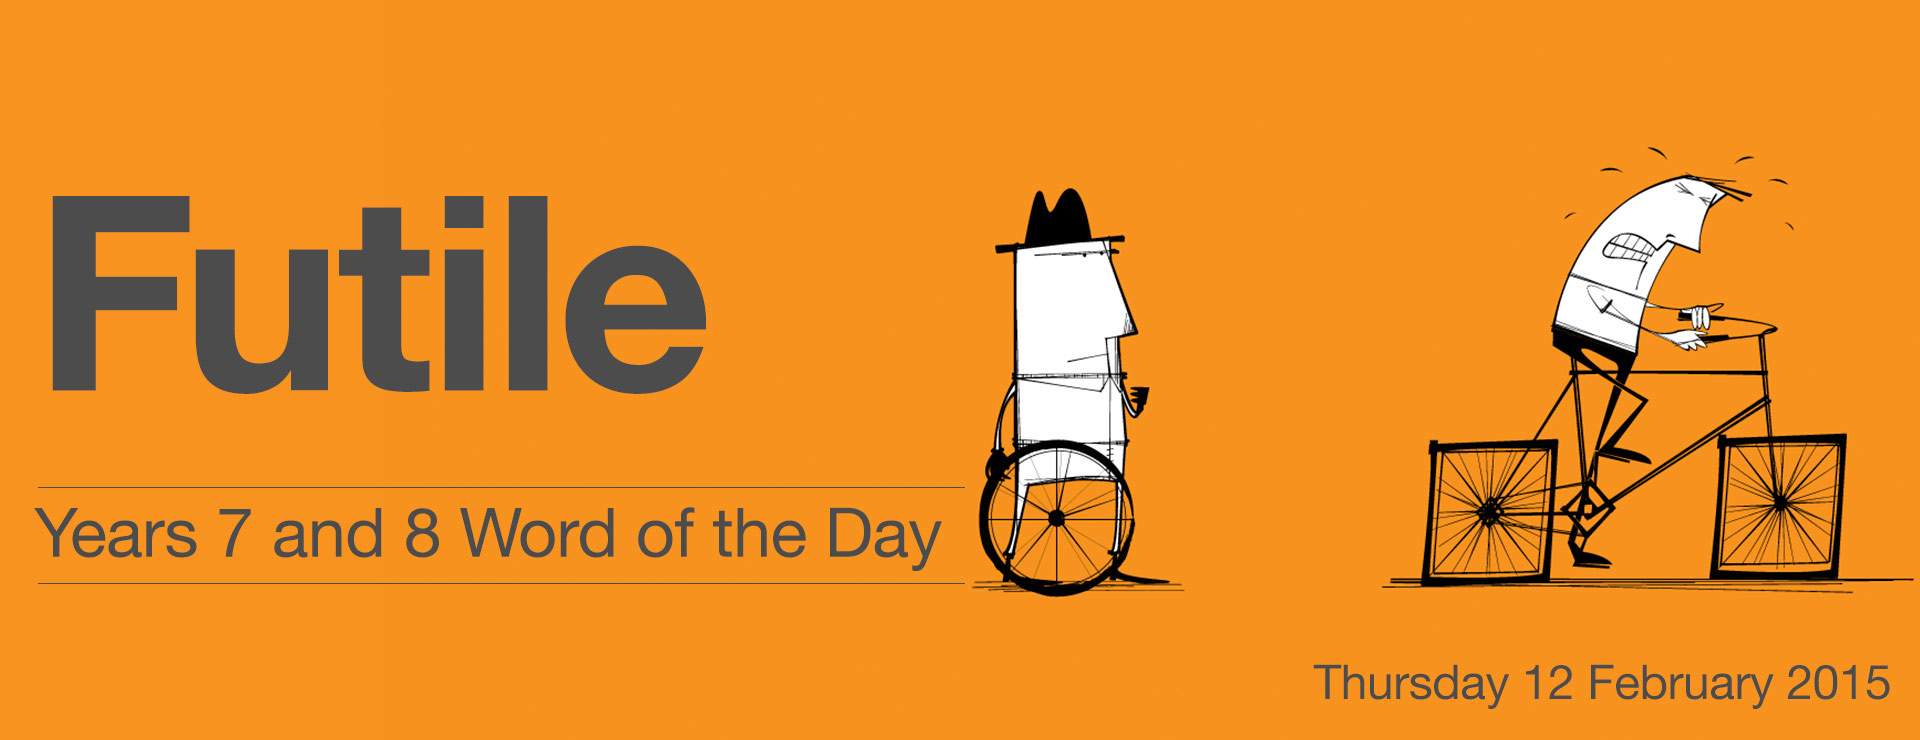 Word-of-the-Day-93.jpg